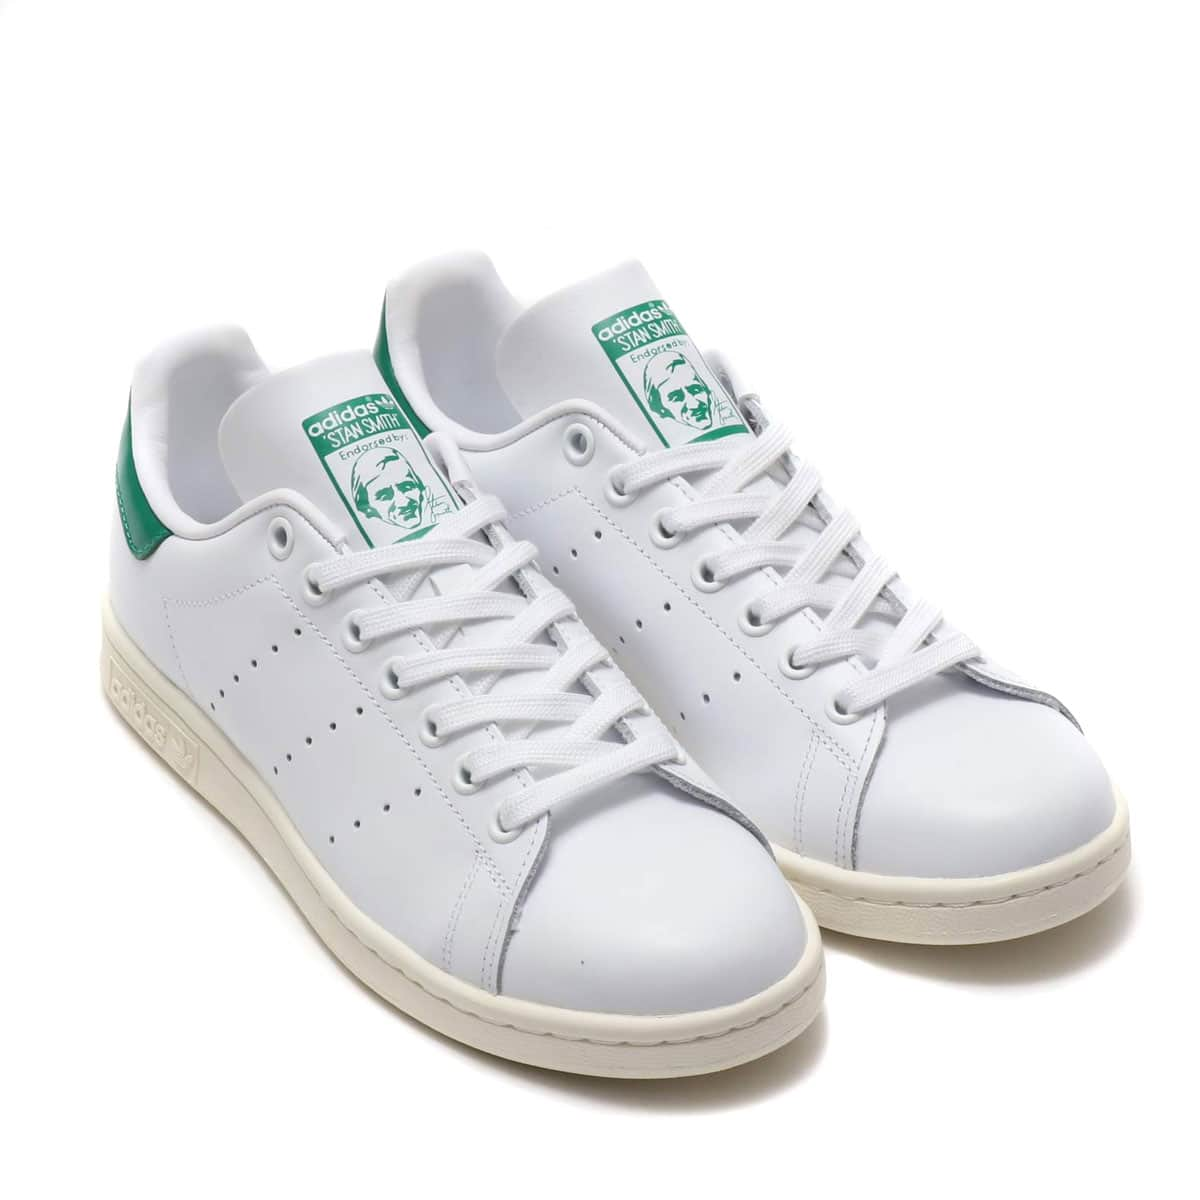 adidas Originals STAN SMITH RUNNING WHITE/OFF WHITE/BOLD GREEN 19SS-I_photo_large